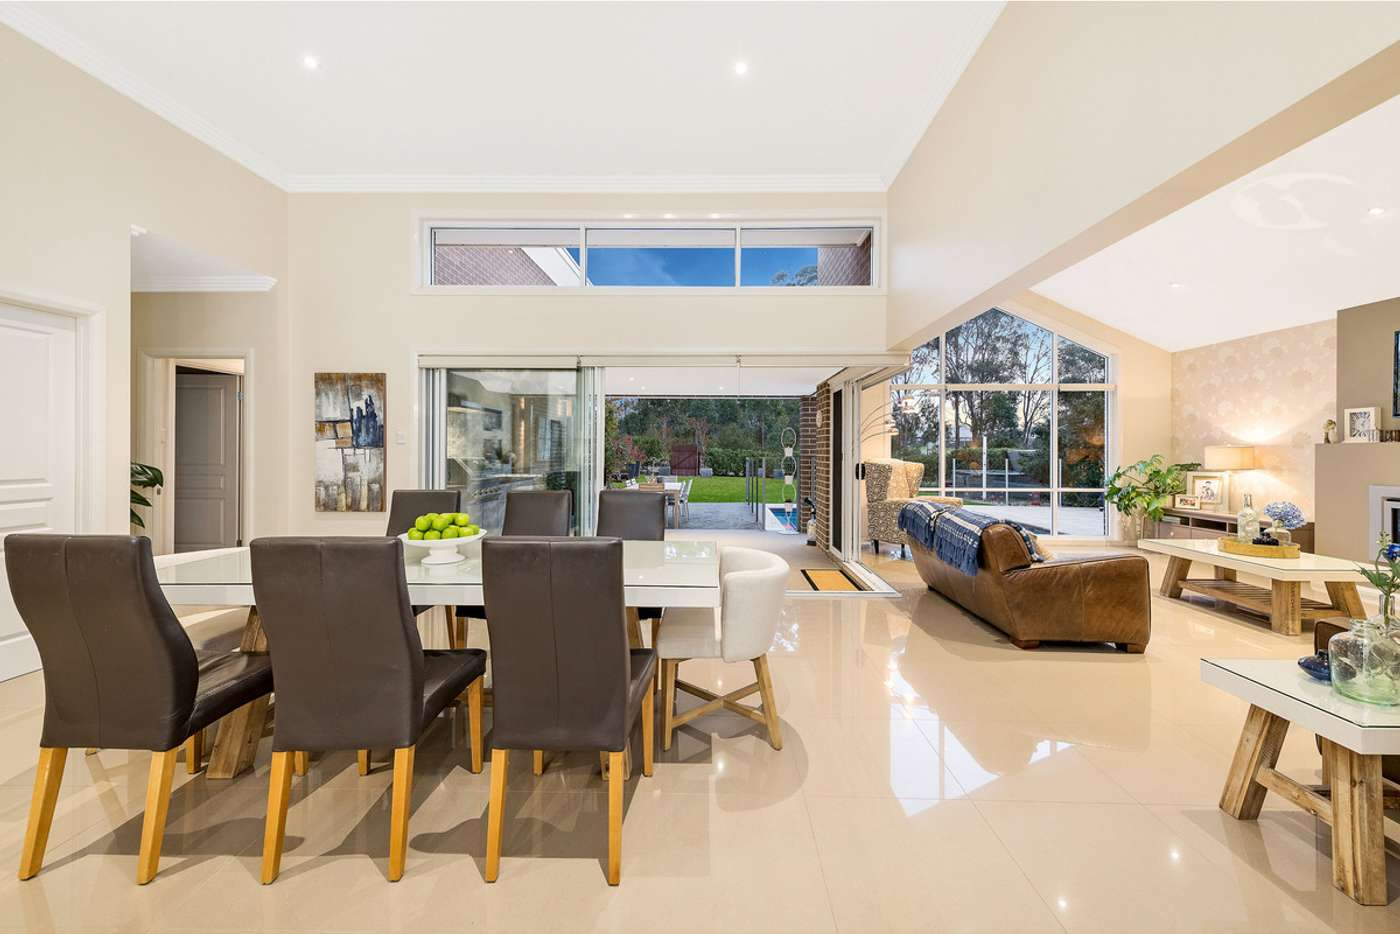 Fifth view of Homely house listing, 27 Eliza Street, Cobbitty NSW 2570